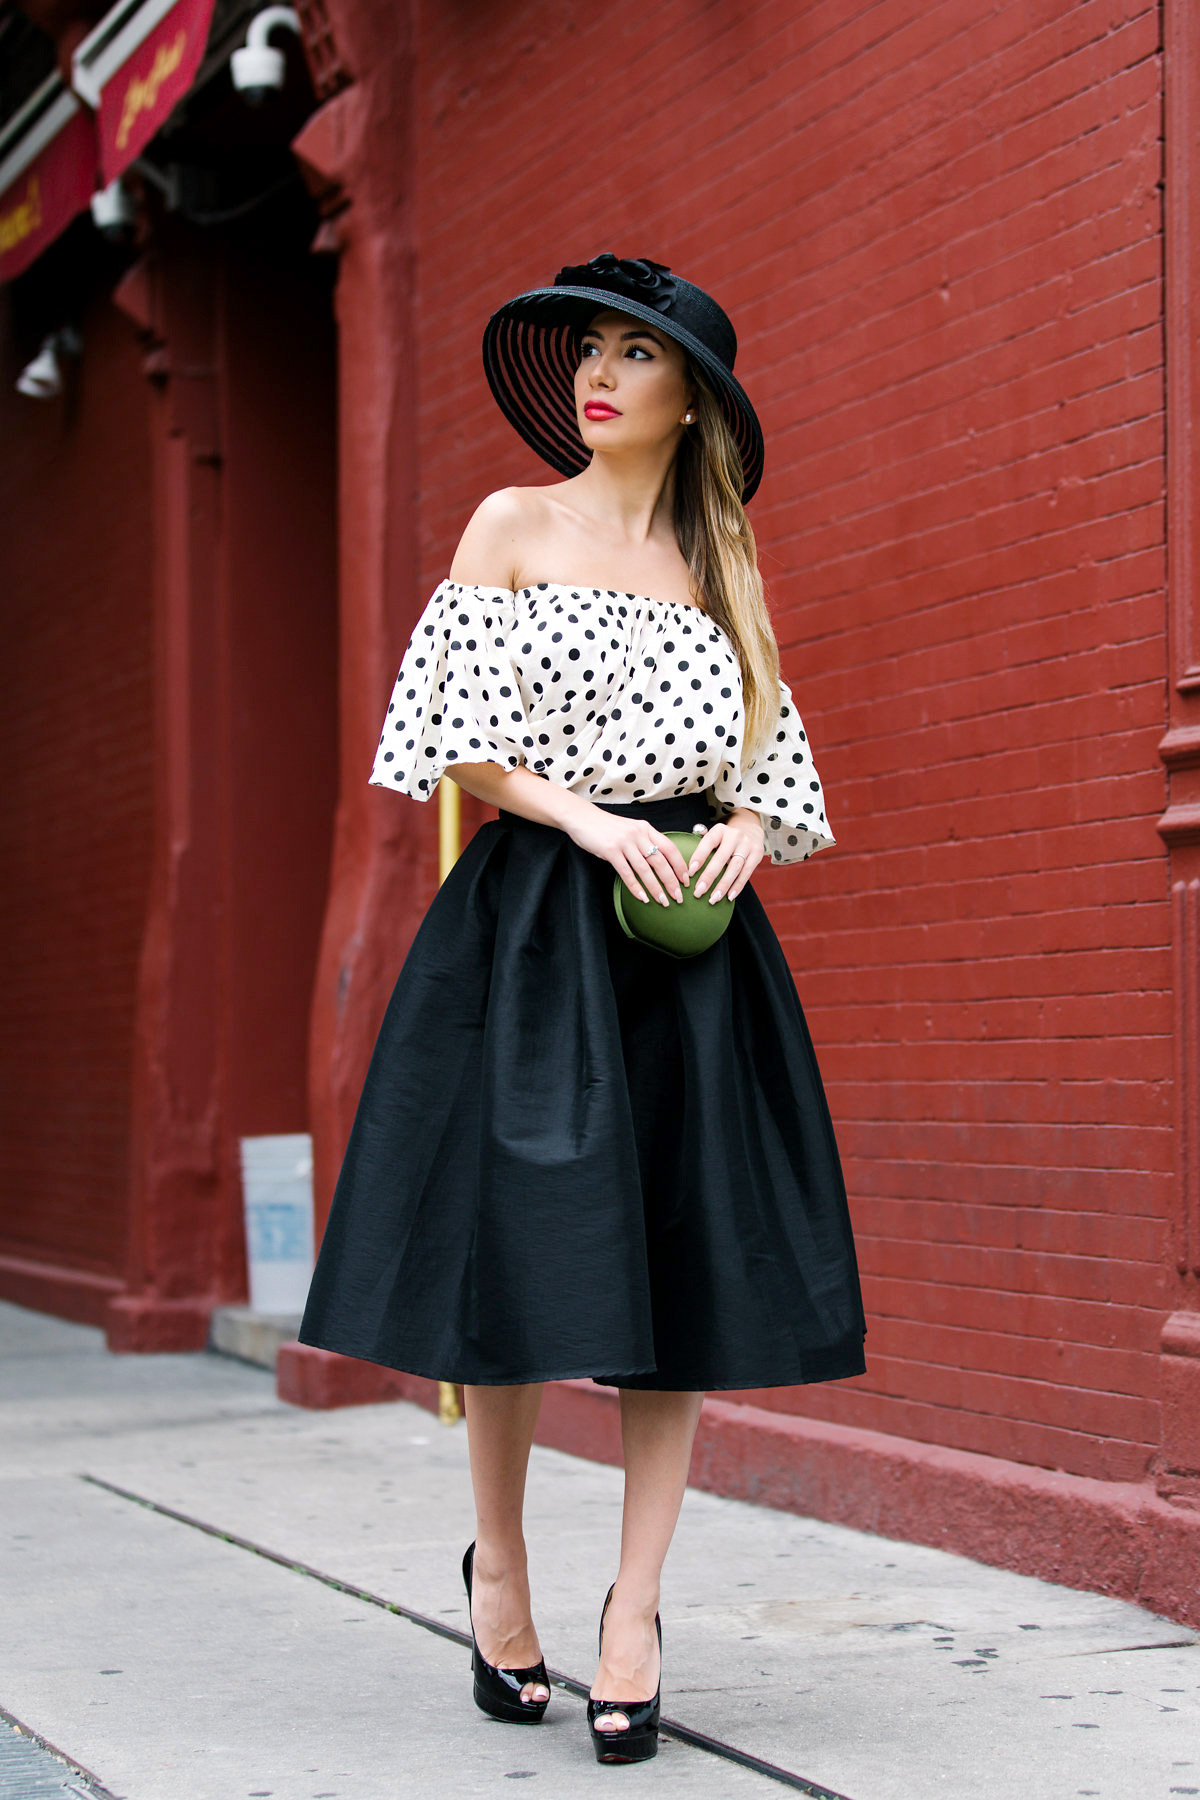 Elegant classy look in black and polka dot. Big hat. Formalwear look by blogger.